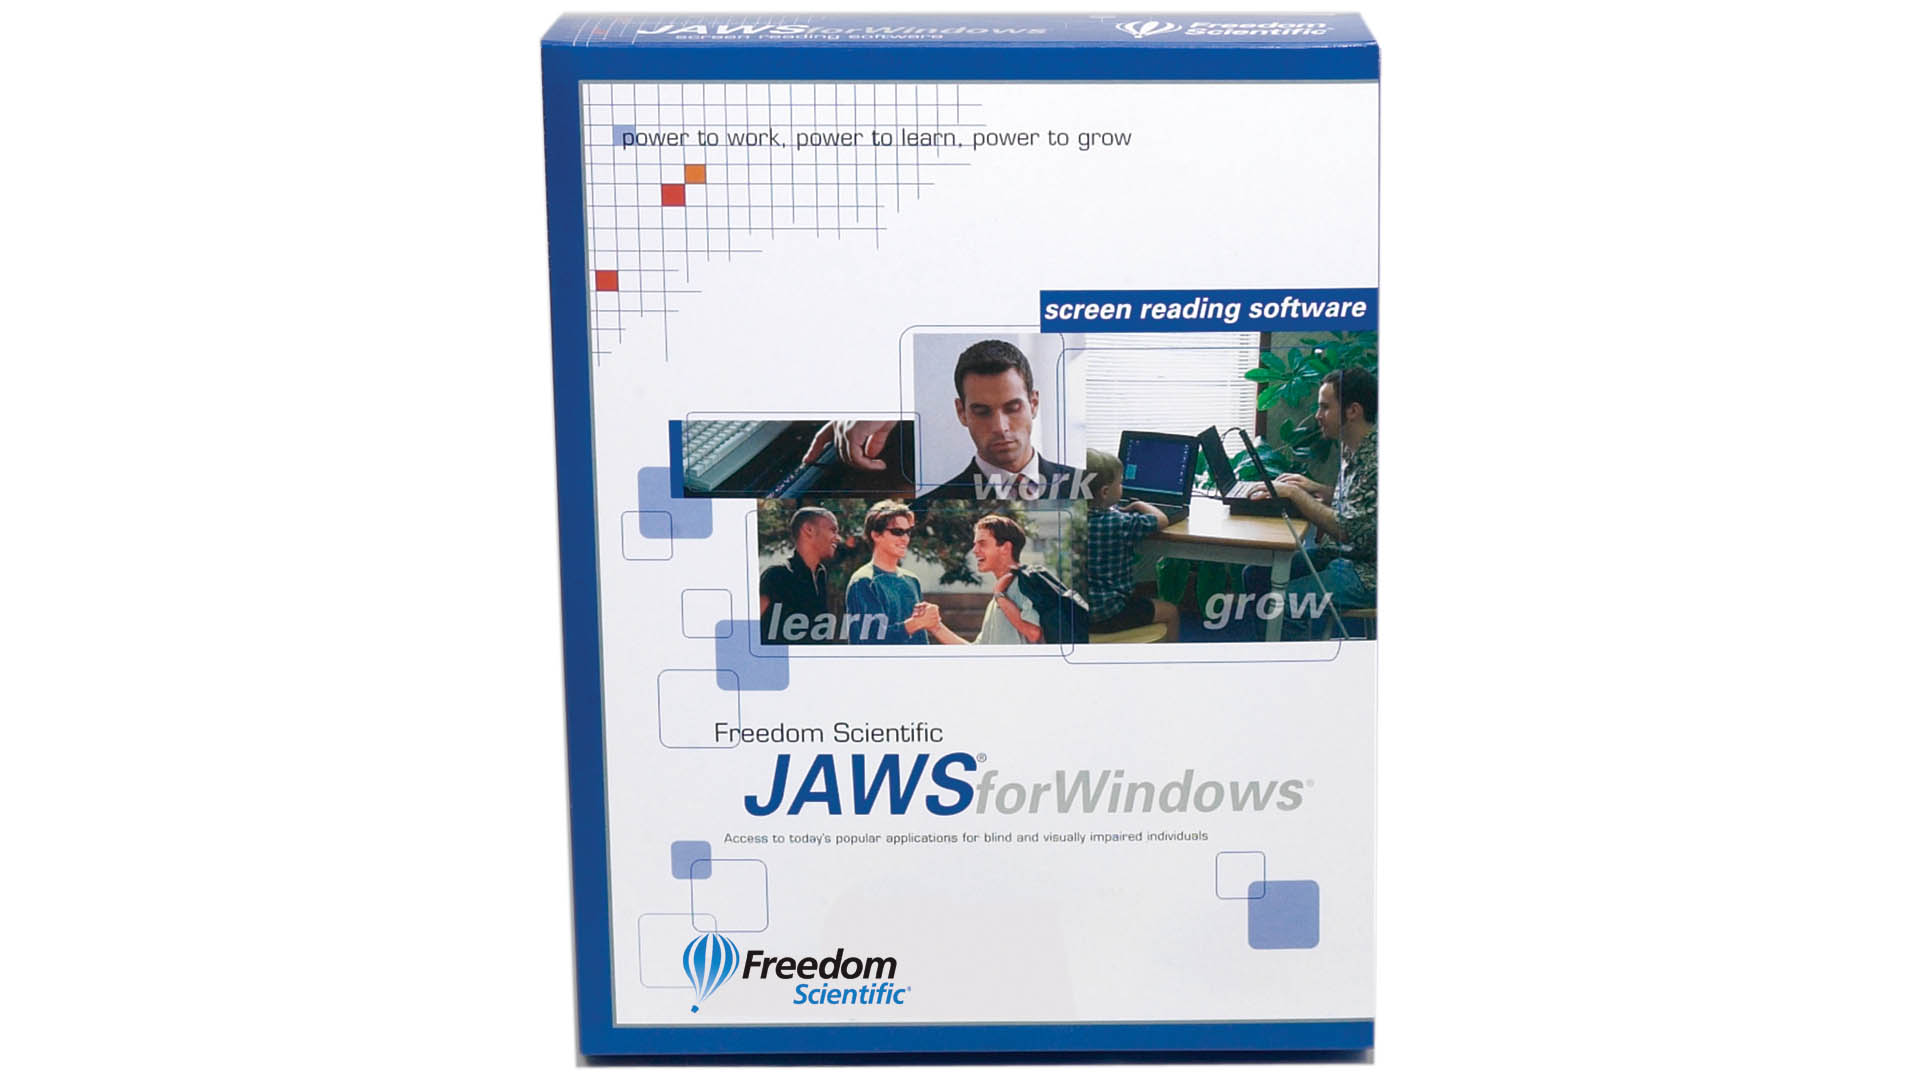 JAWS Home software box